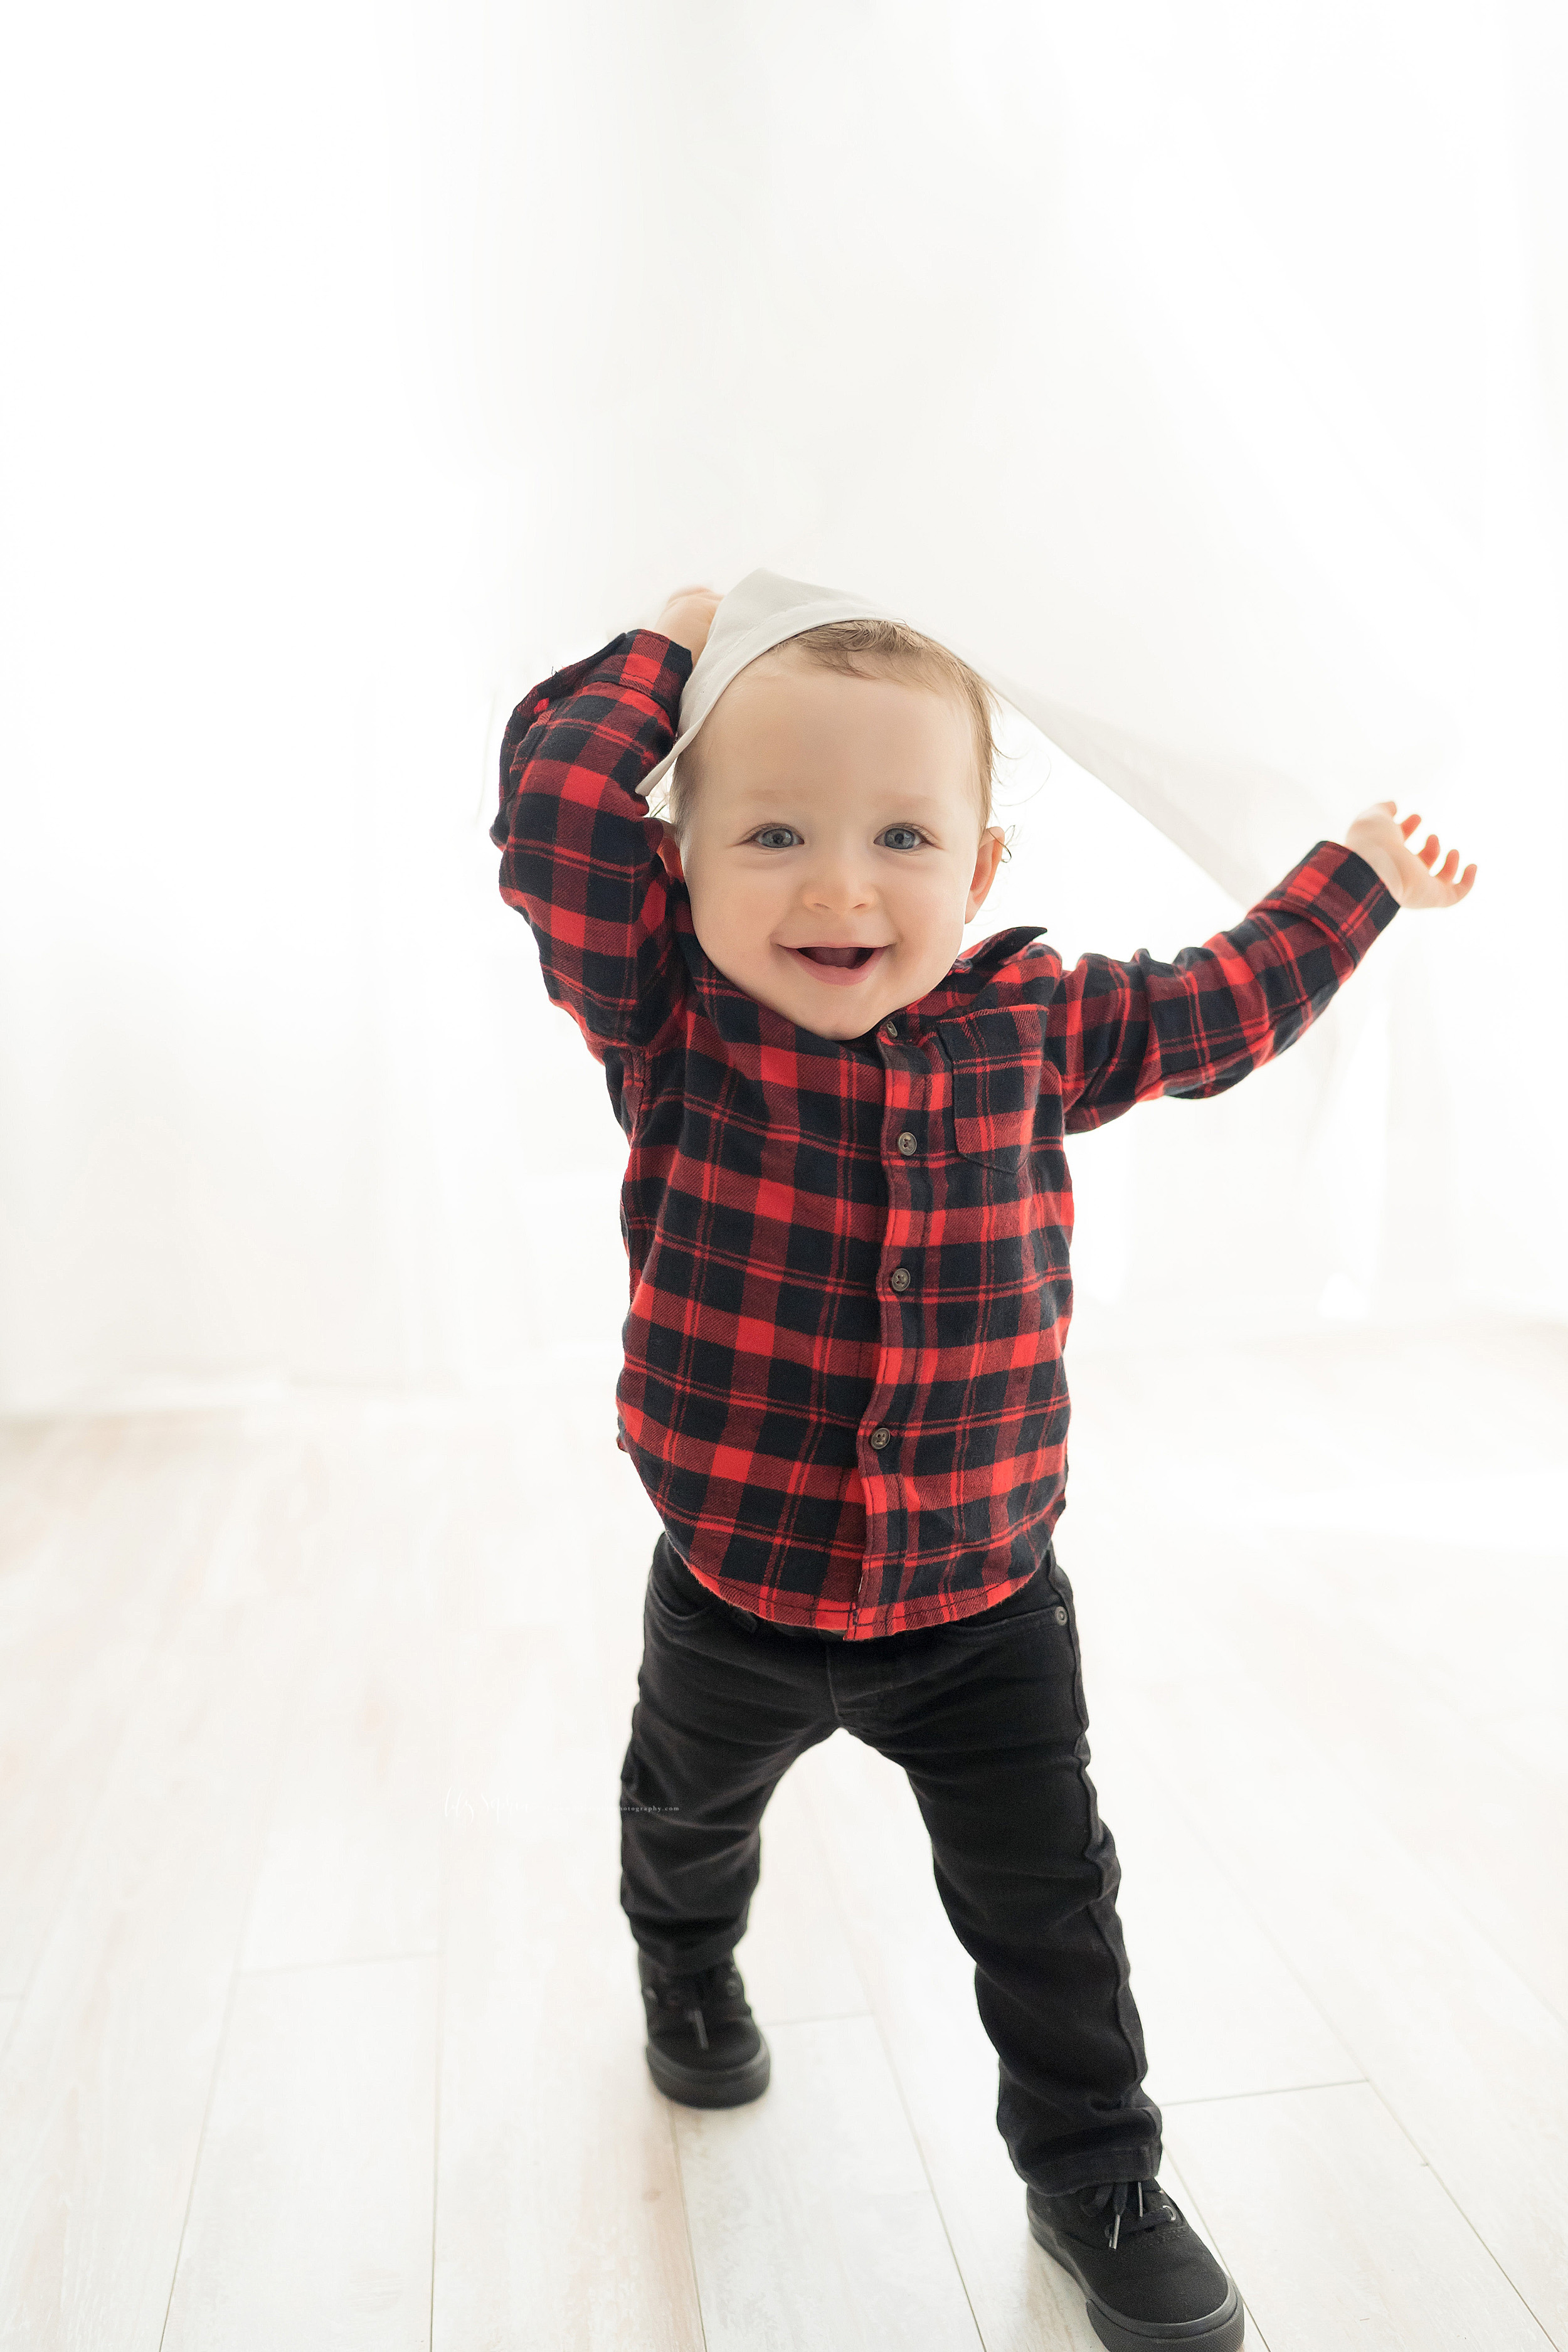 Photo of a one-year old little boy as he plays peek-a-boo from behind the curtains in an Atlanta natural light studio.